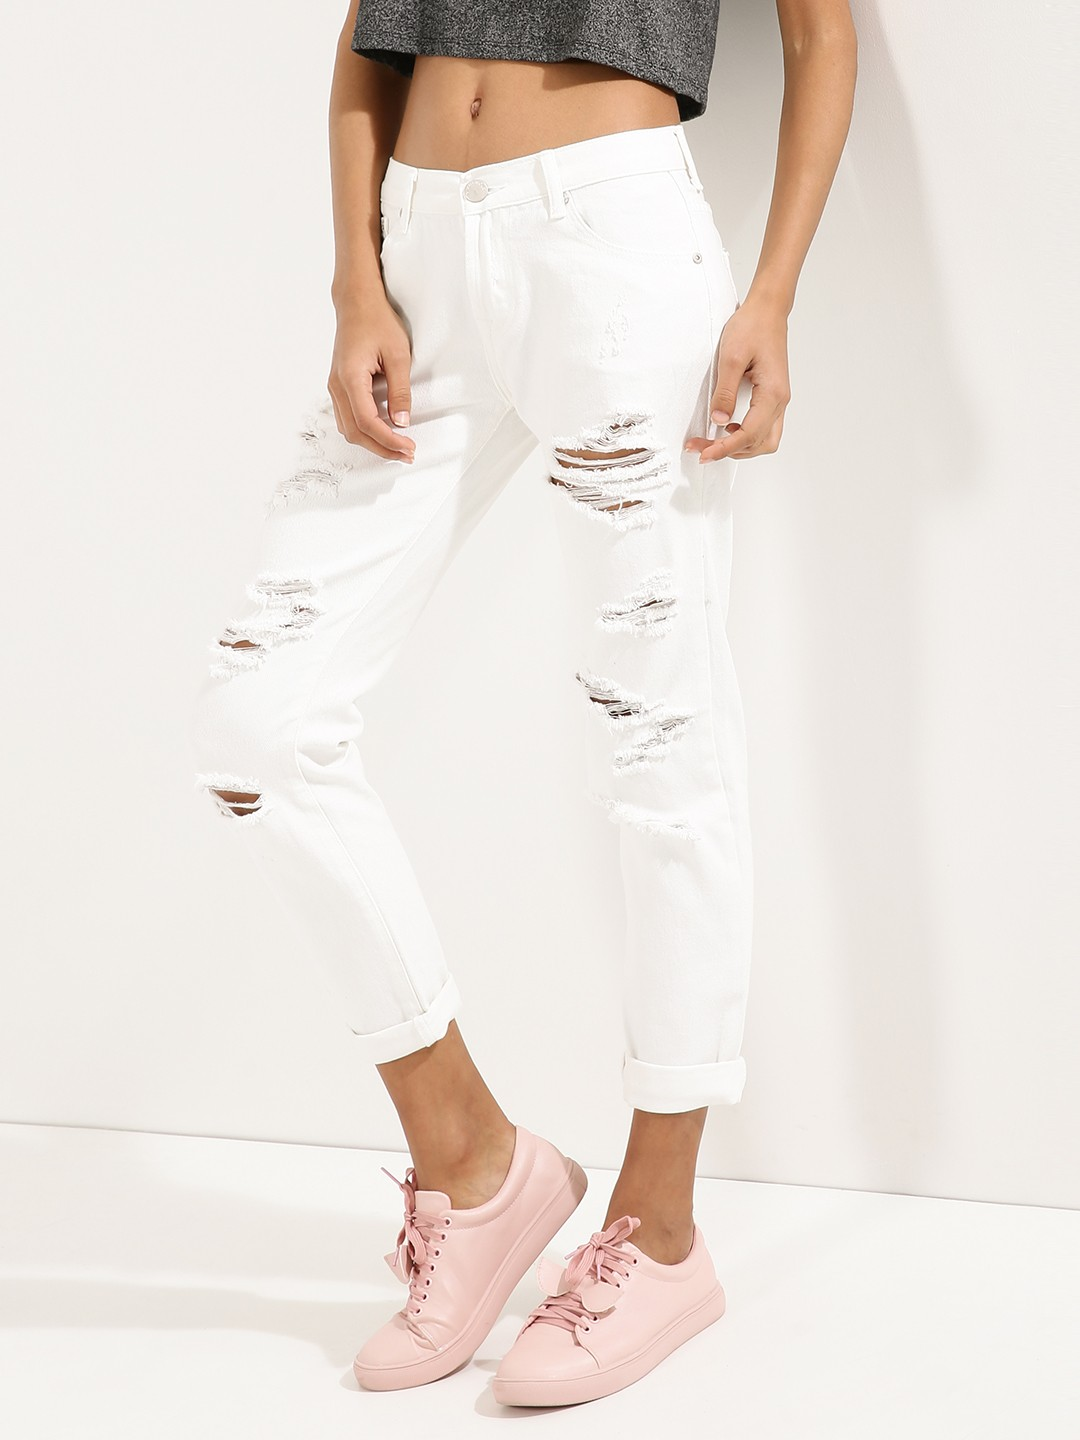 Buy GLAMOROUS Distressed Jeans For Women - Women's White Straight ...